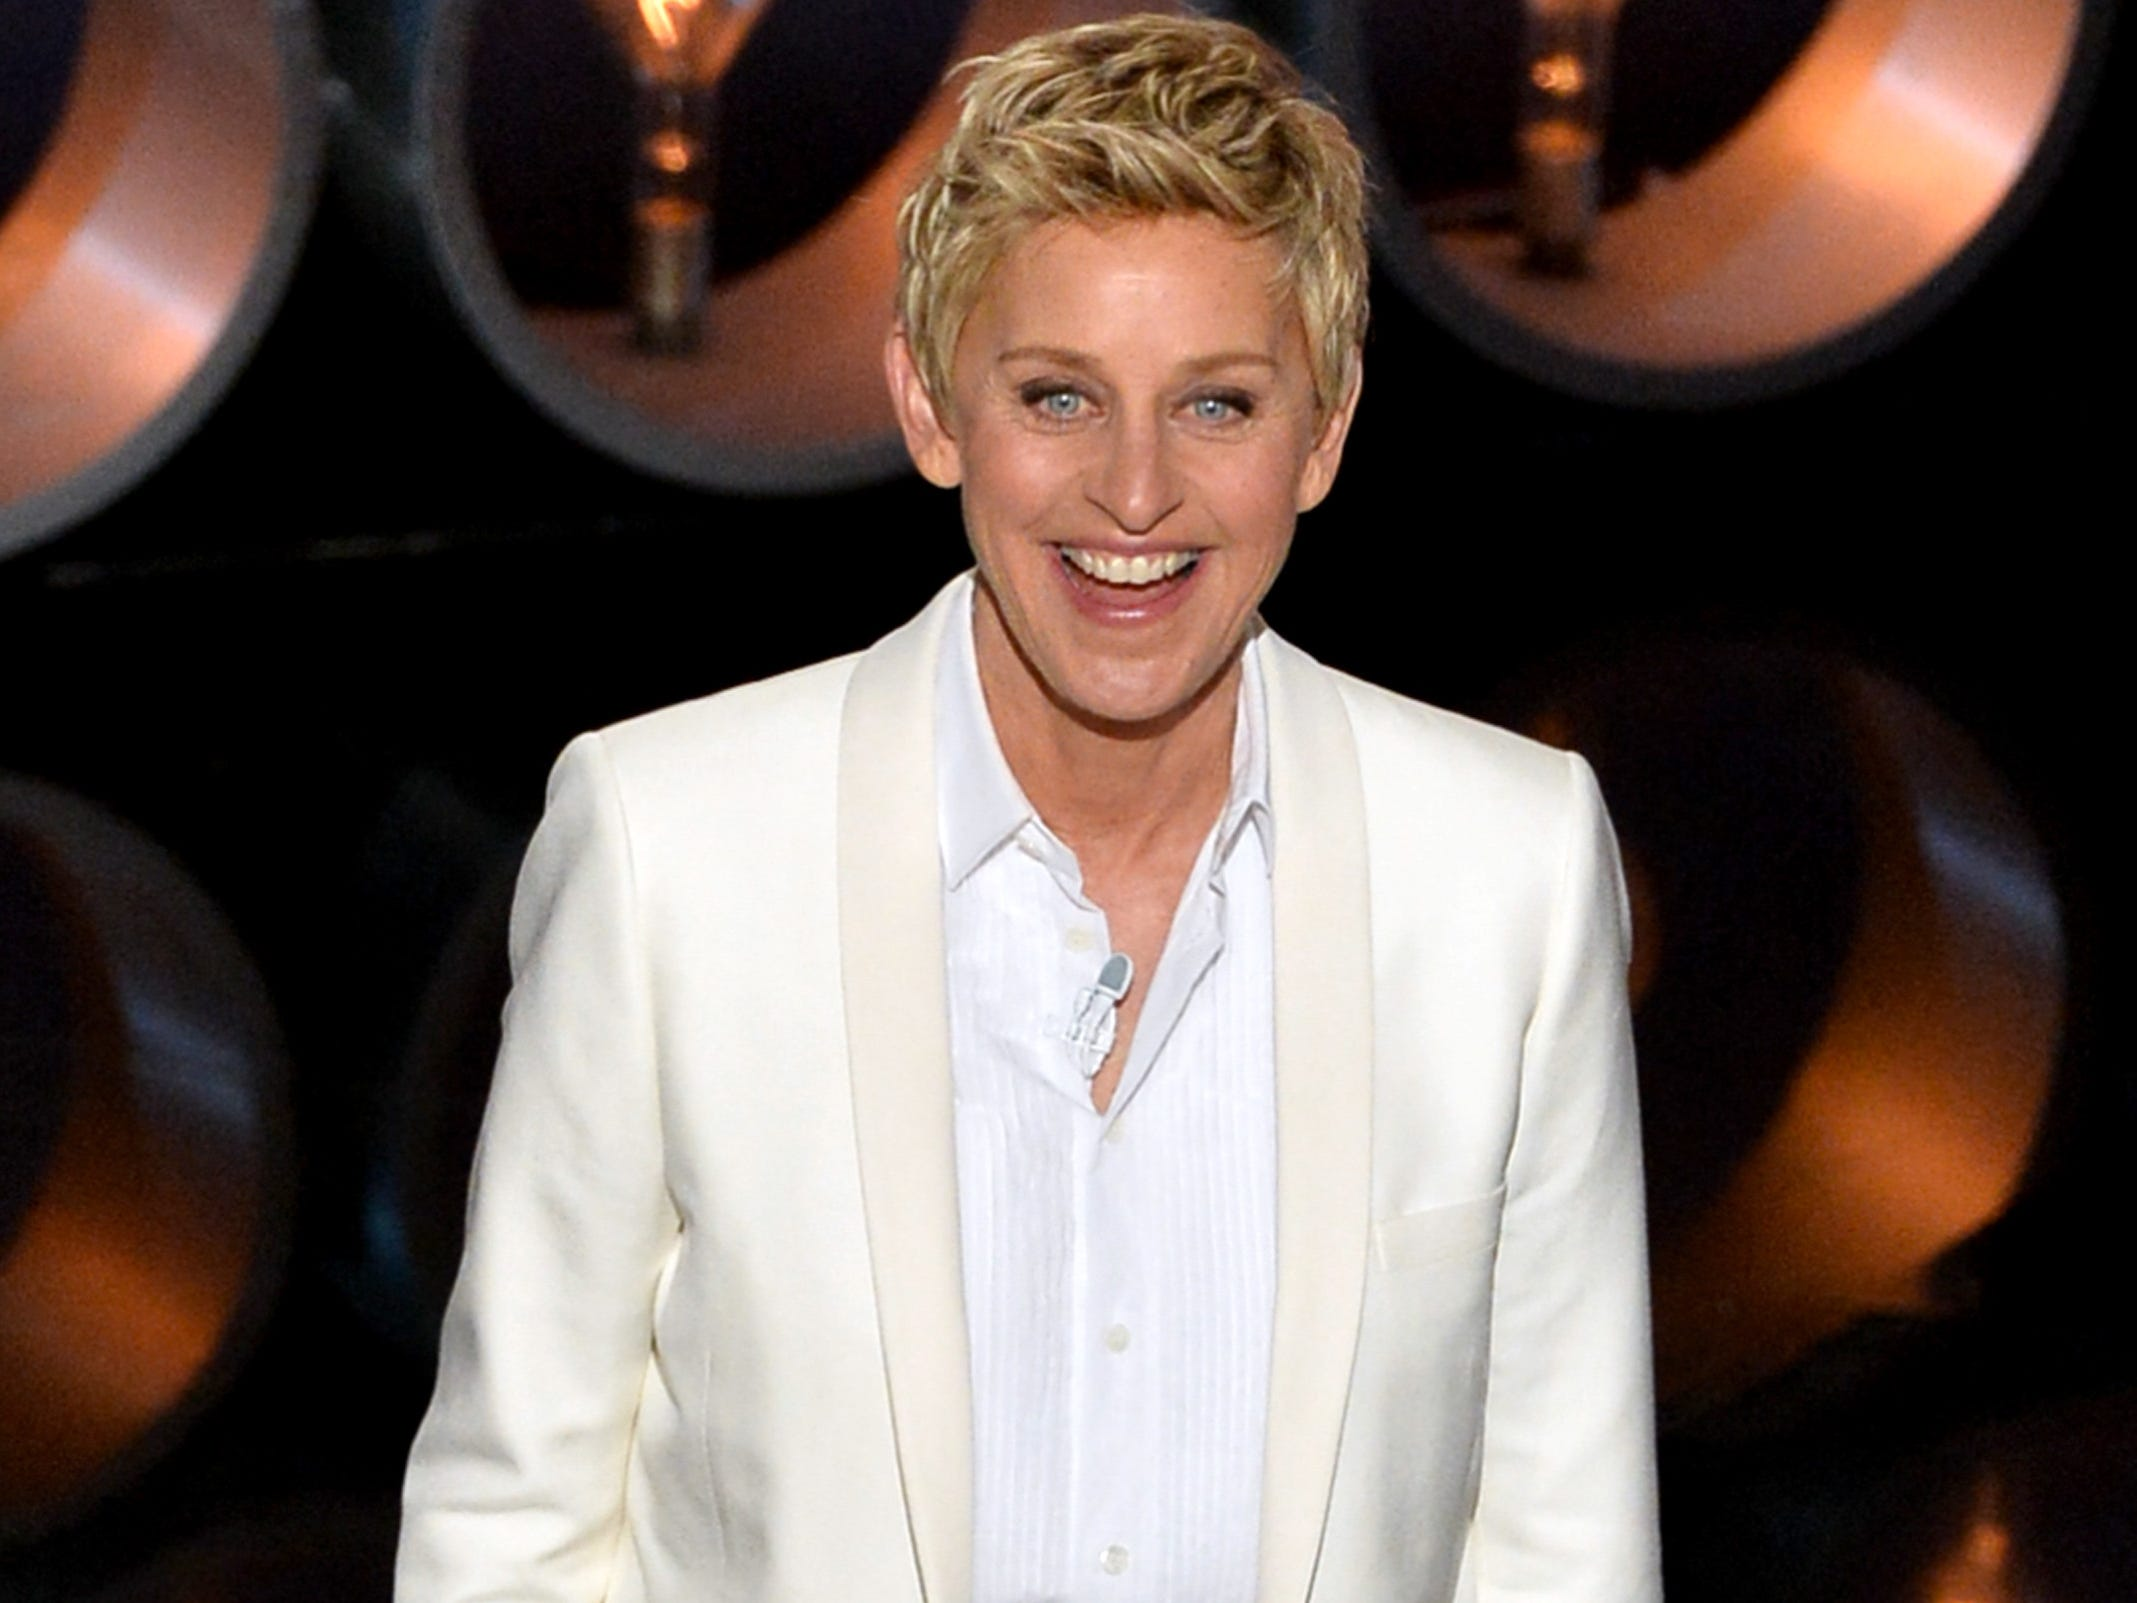 Ellen DeGeneres on why she (probably) won't host the Oscars again: 'It's a thankless job'